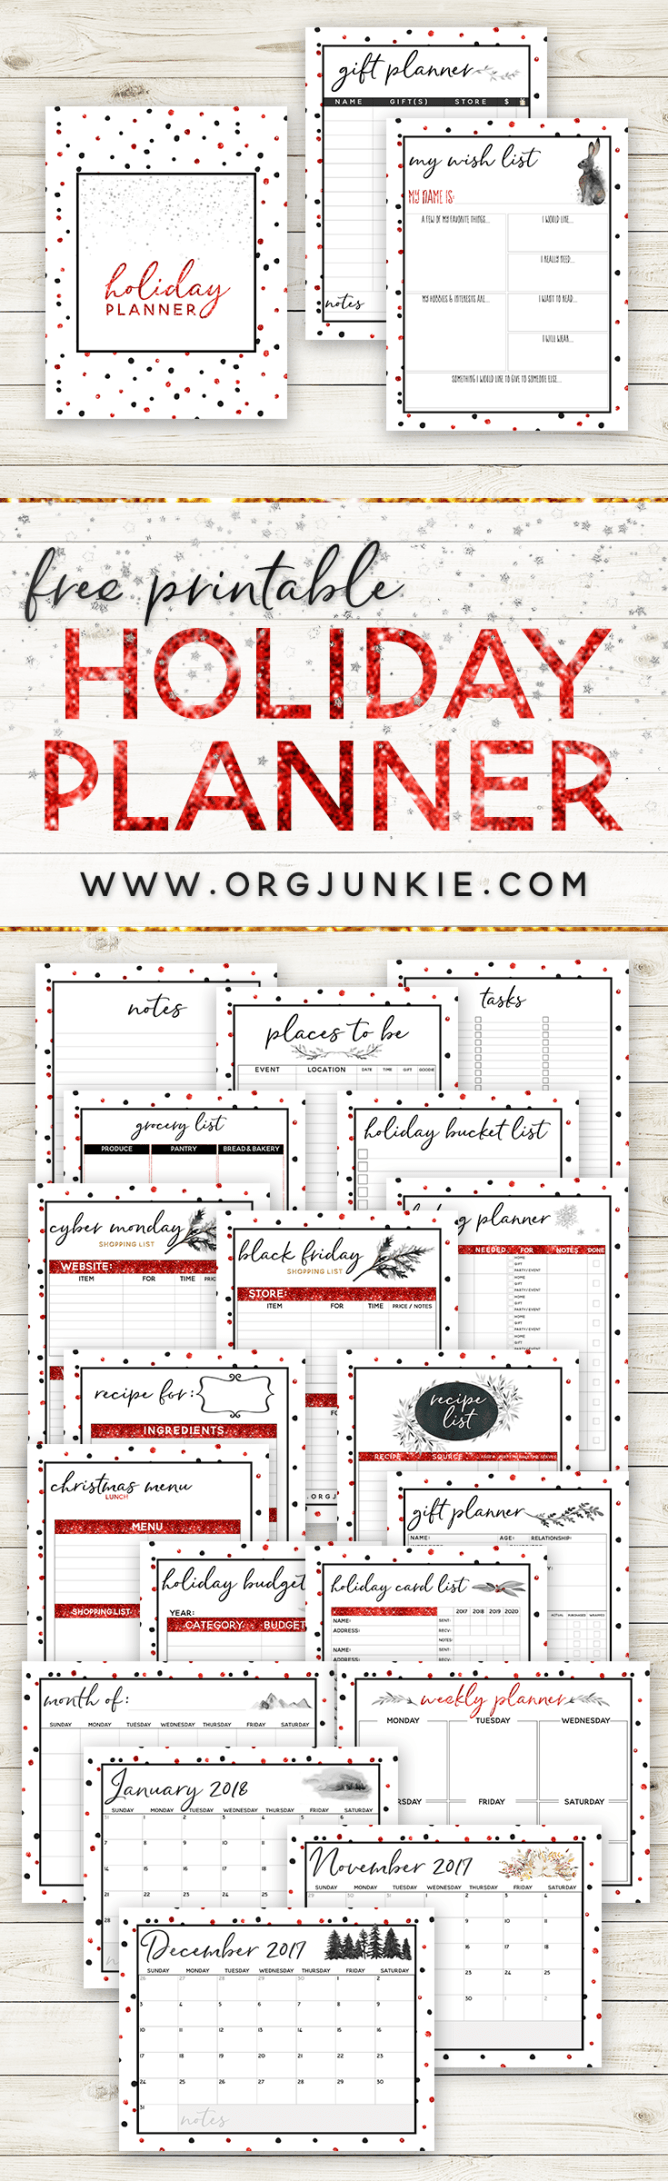 2017 FREE Holiday Planner - 27 Printables for the Most Organized Christmas Yet! at I'm an Organizing Junkie blog #christmas #organized #holidayplanner